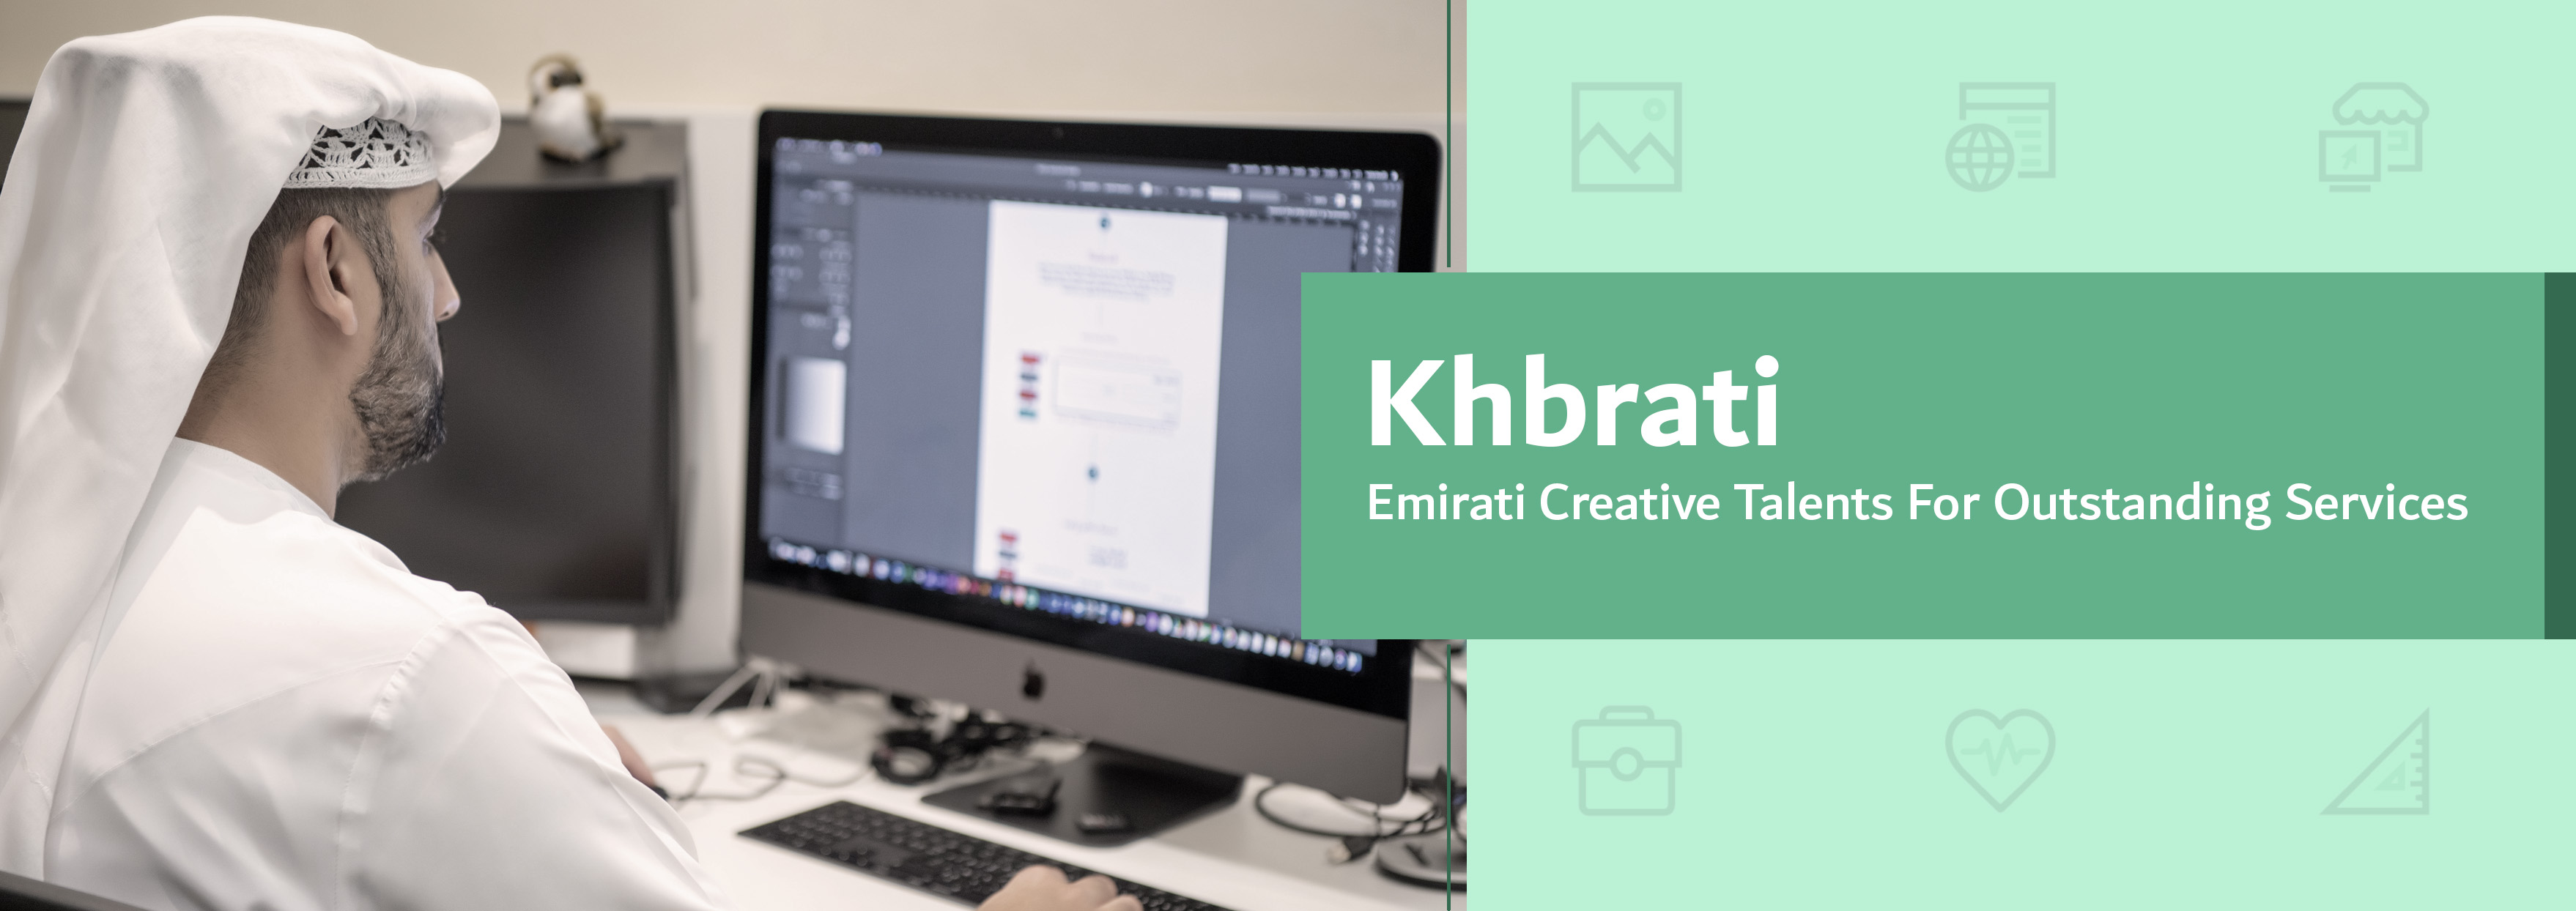 Khbrati - Emirati Creative Talents for Outstanding Services